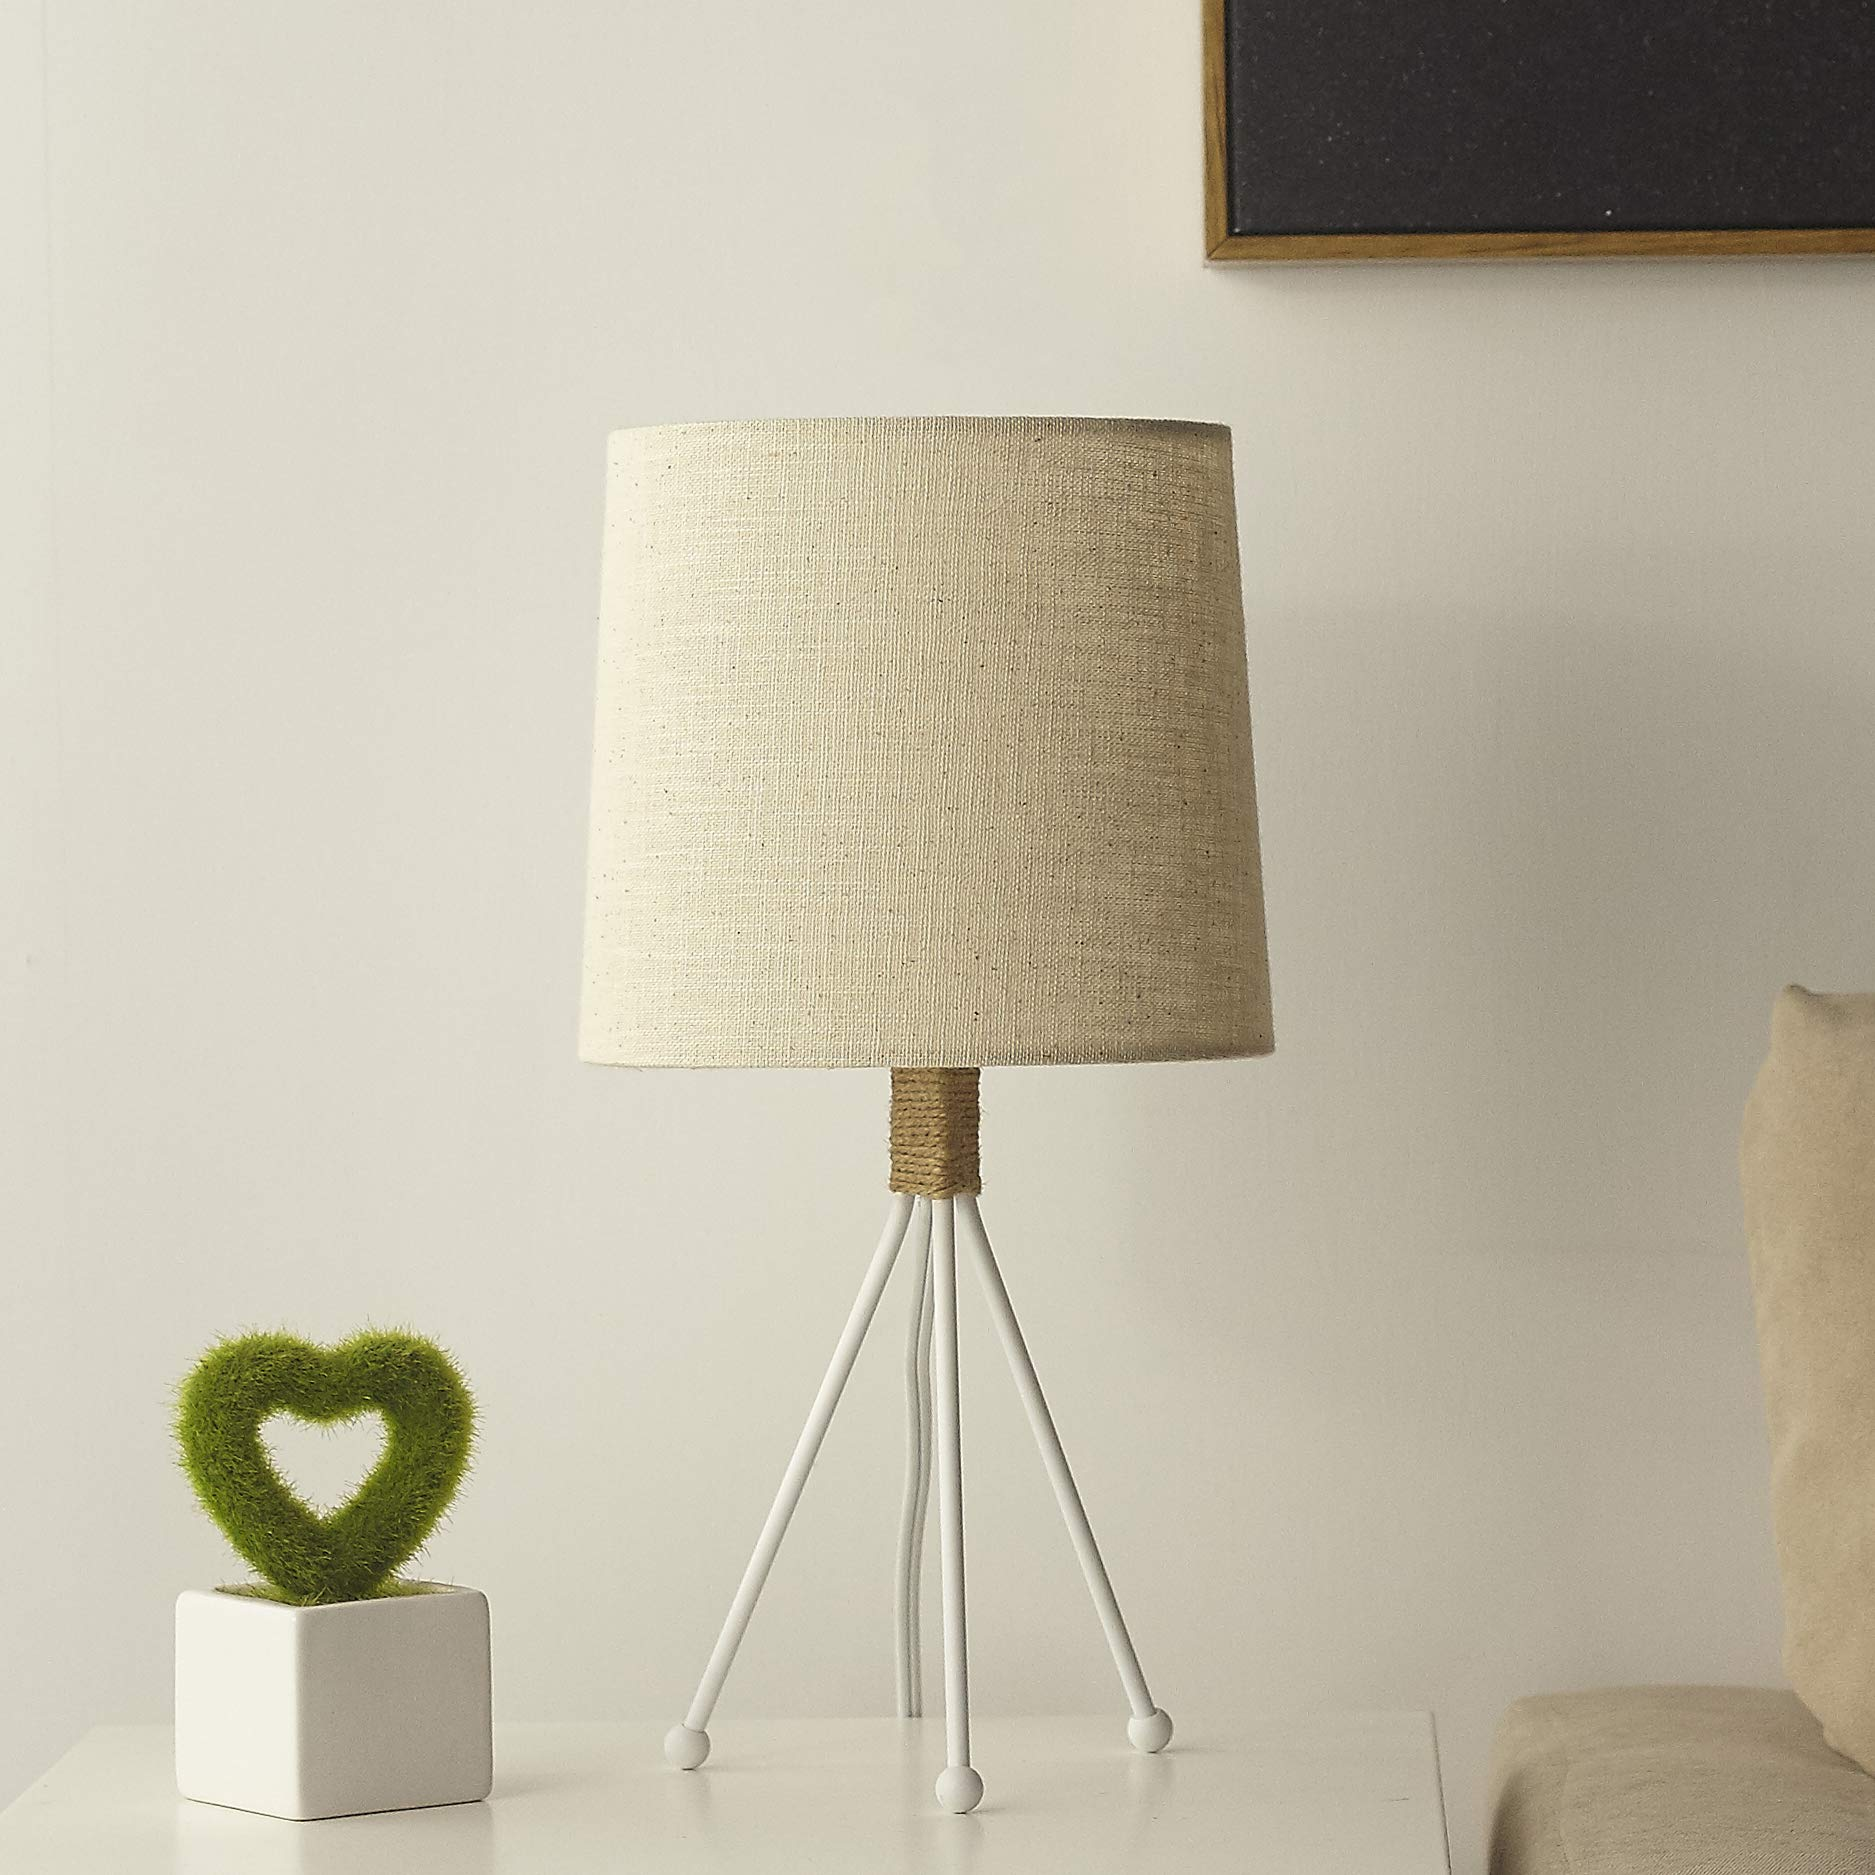 Tripod Small Table Lamp,14''H Small Bedside Lamp